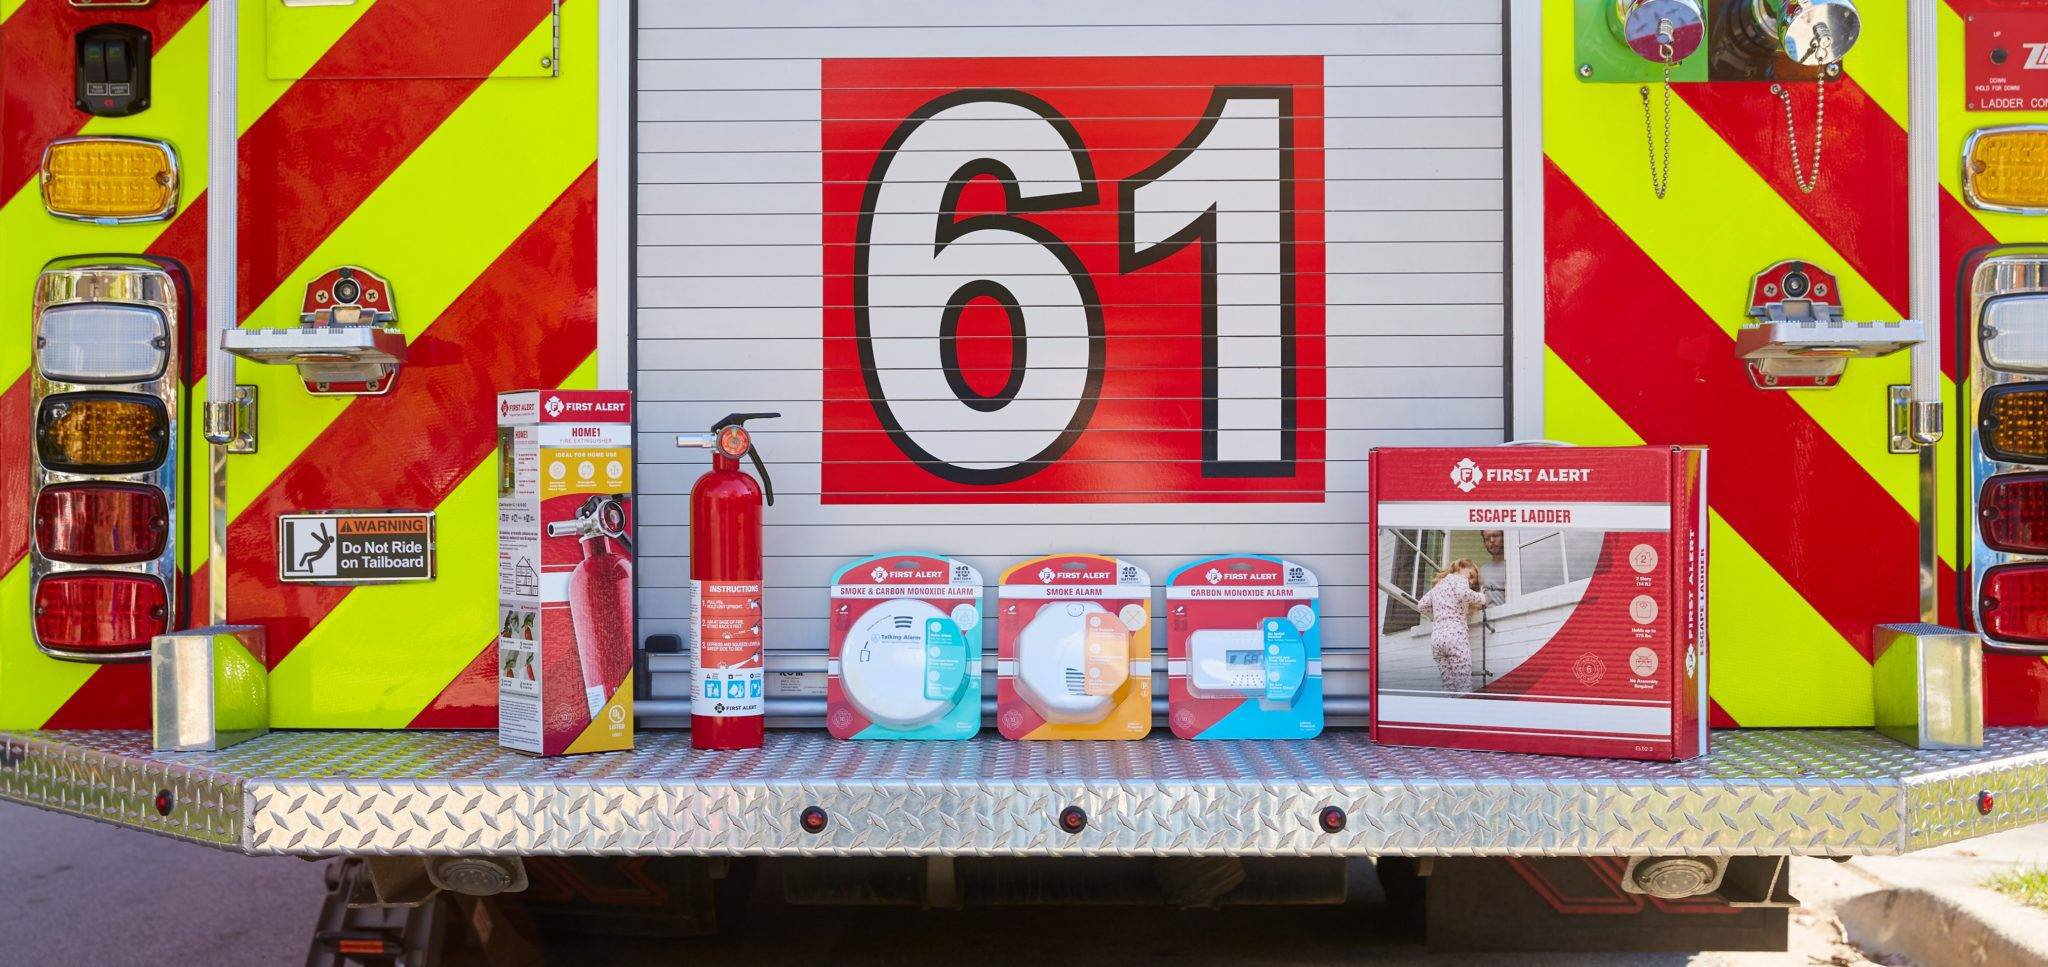 Fire Safety Equipment to Keep in Your Home